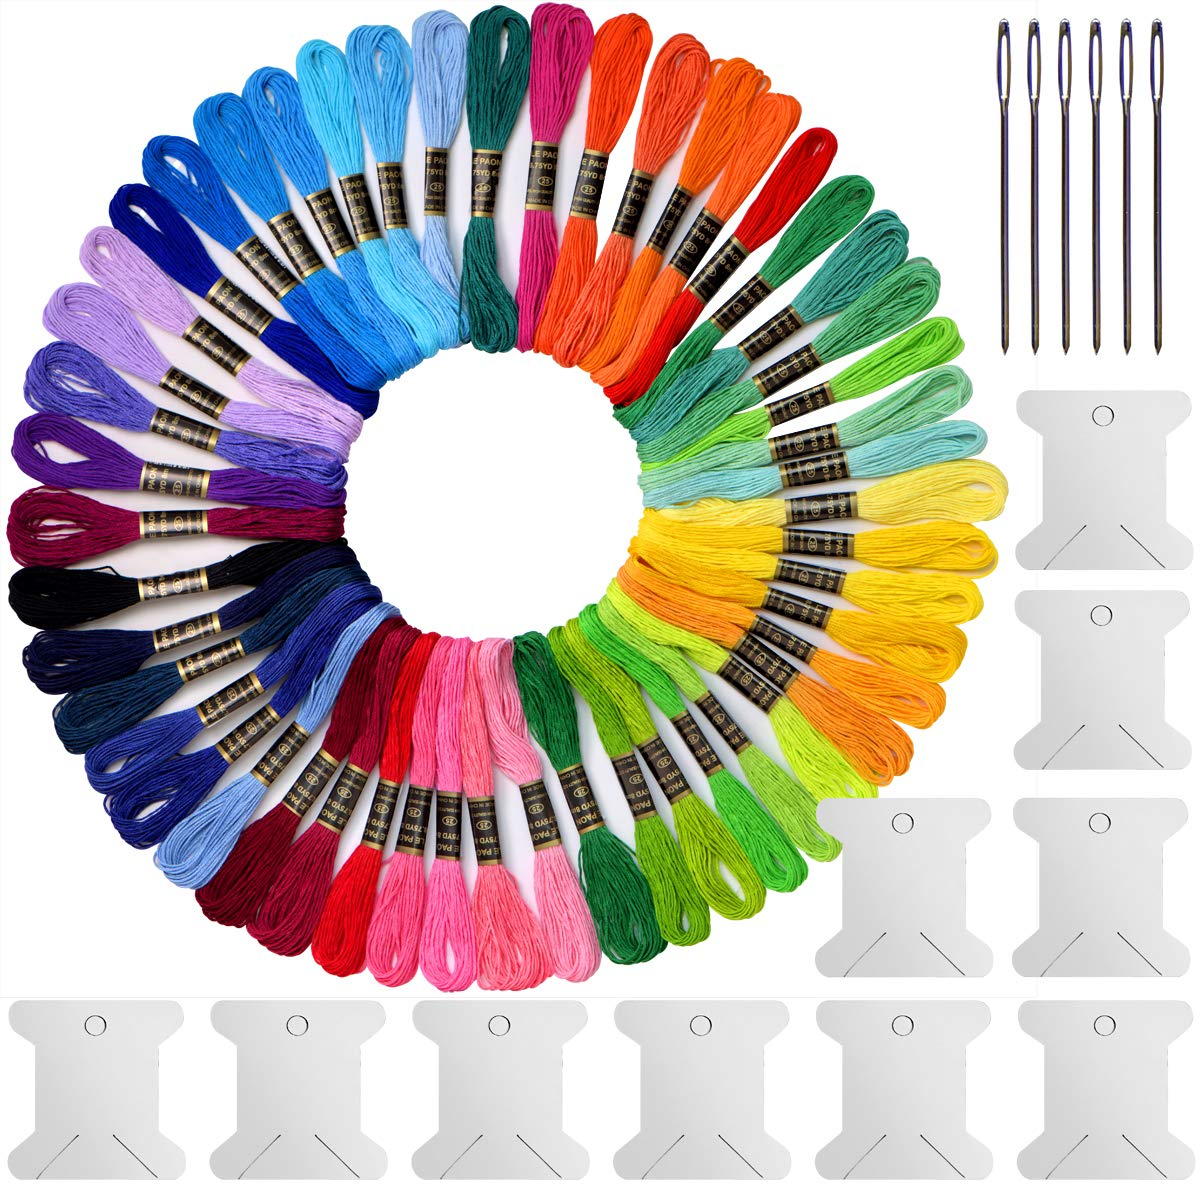 Embroidery Floss & Embroidery Thread kit- Cross Stitch Threads - Friendship Bracelets Floss - Crafts Floss -100% Long-Staple Cotton-100 skeins Per Pack and Free Set of 12 Pcs Organizer Floss Bobbins